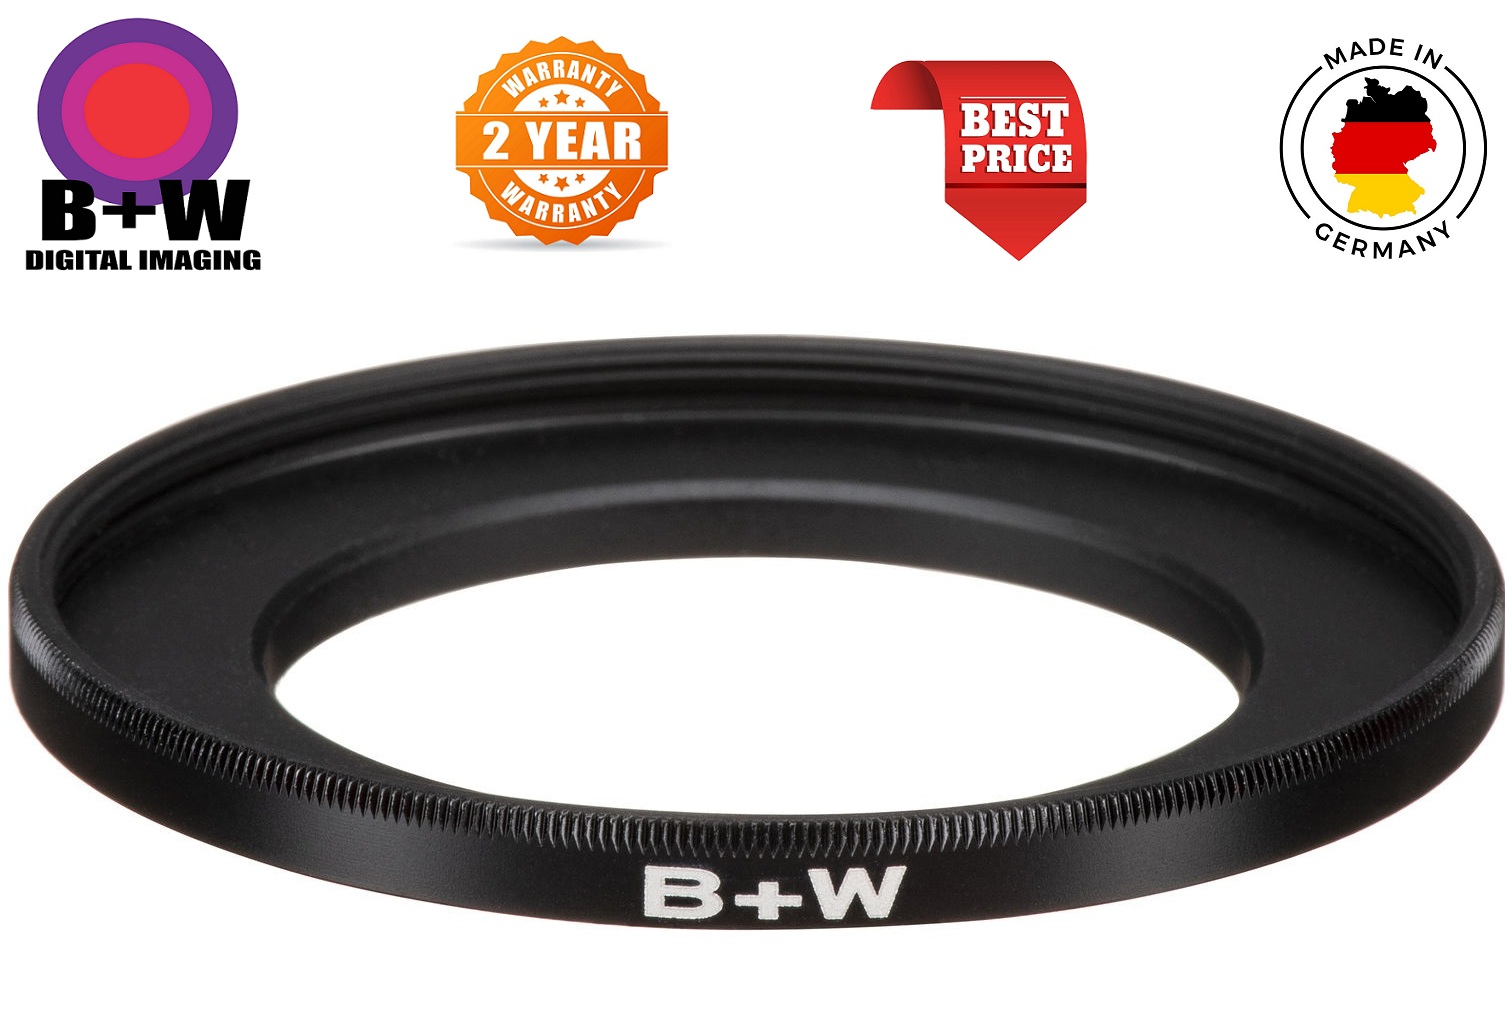 B+W 40.5-58mm Step Up Ring